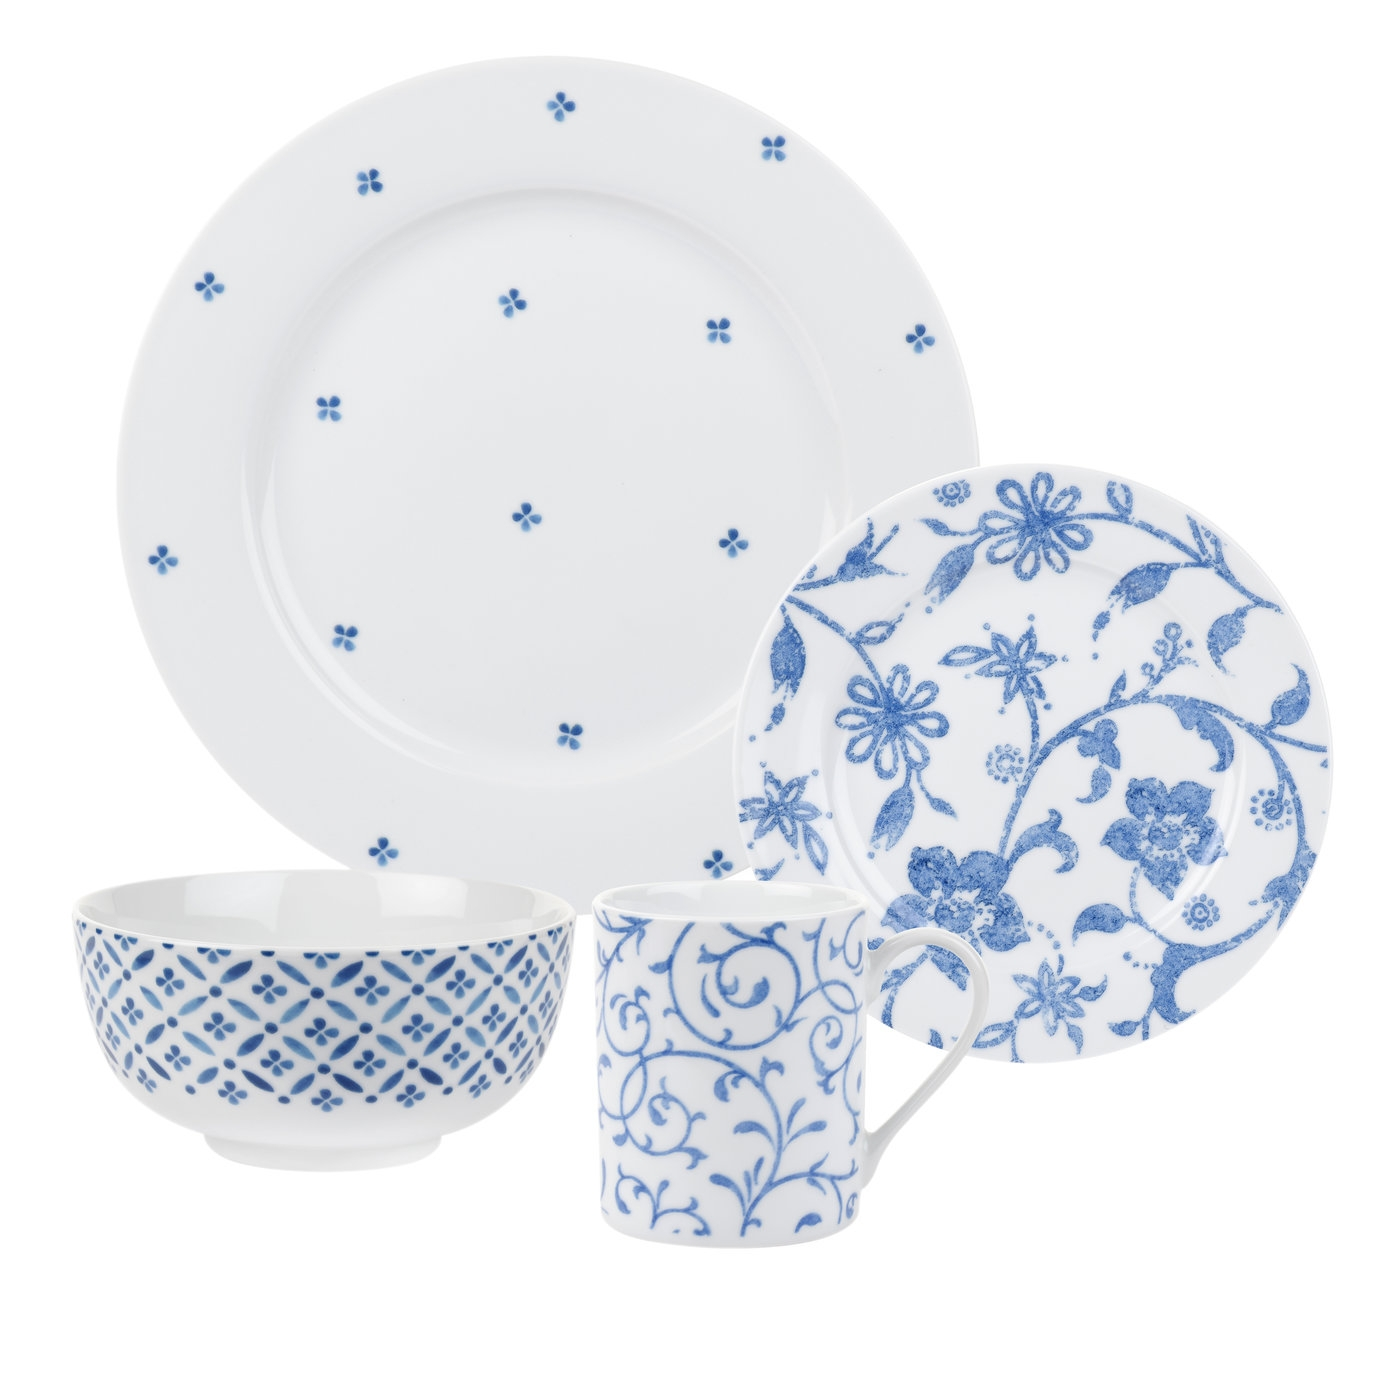 Spode Home Blue Indigo 16 Piece SET  image number 0